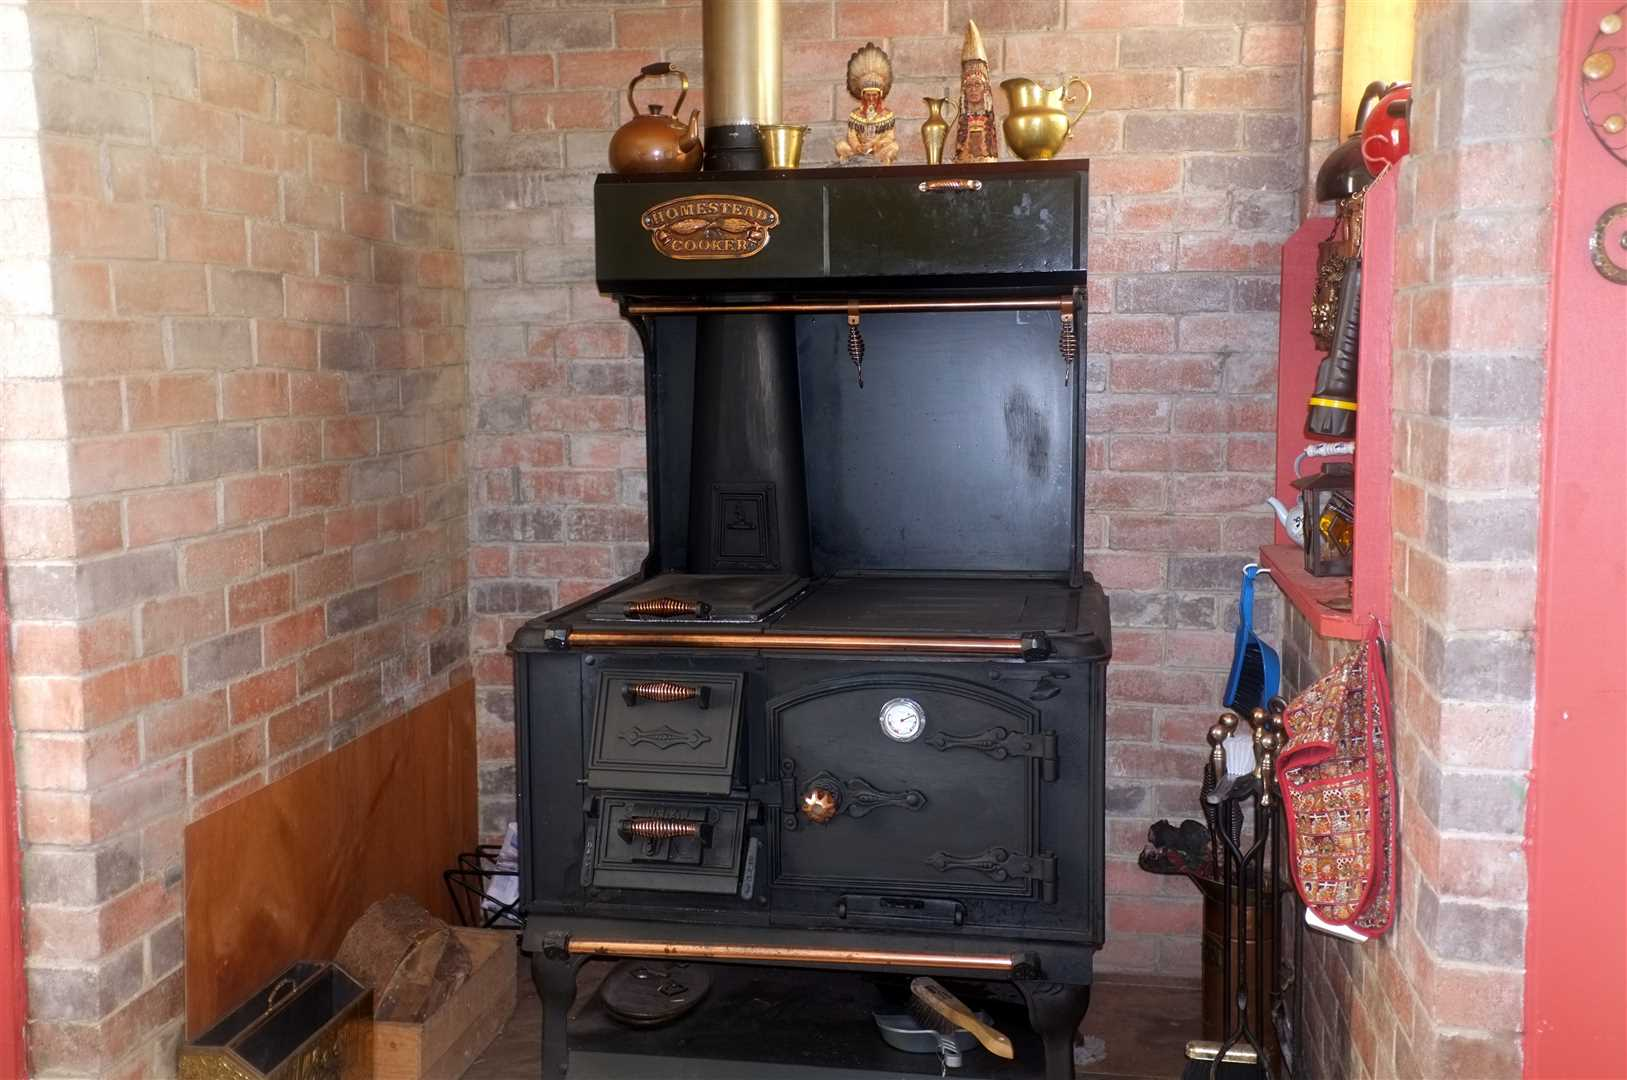 Combustion Stove